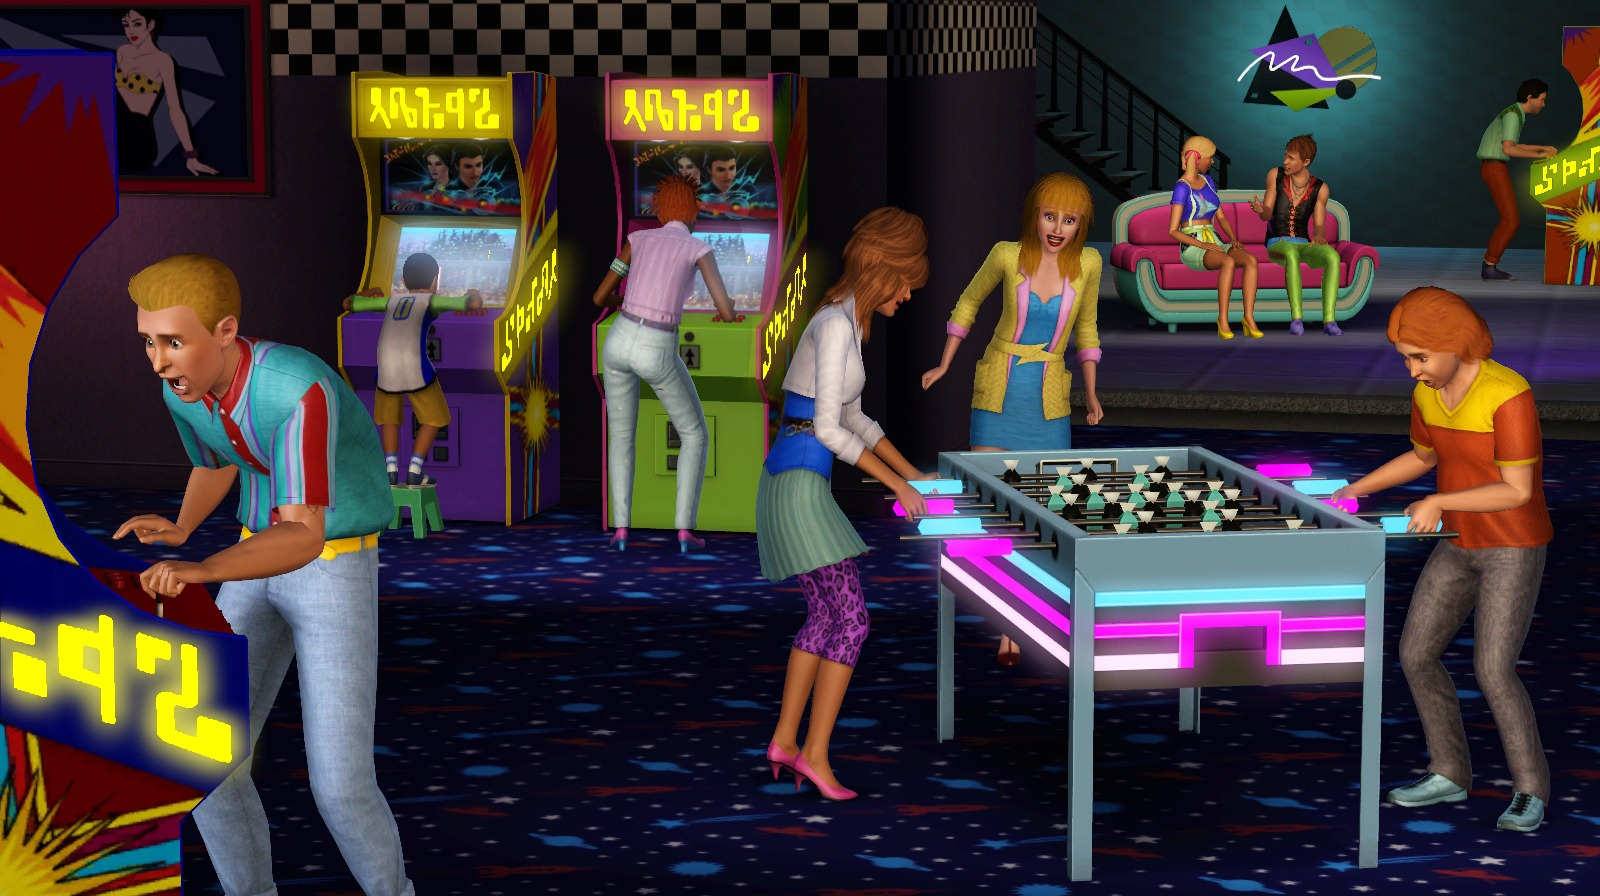 http://images.wikia.com/simswiki/pt-br/images/a/ae/The_Sims_3_Anos_70,_80,_e_90_16.png